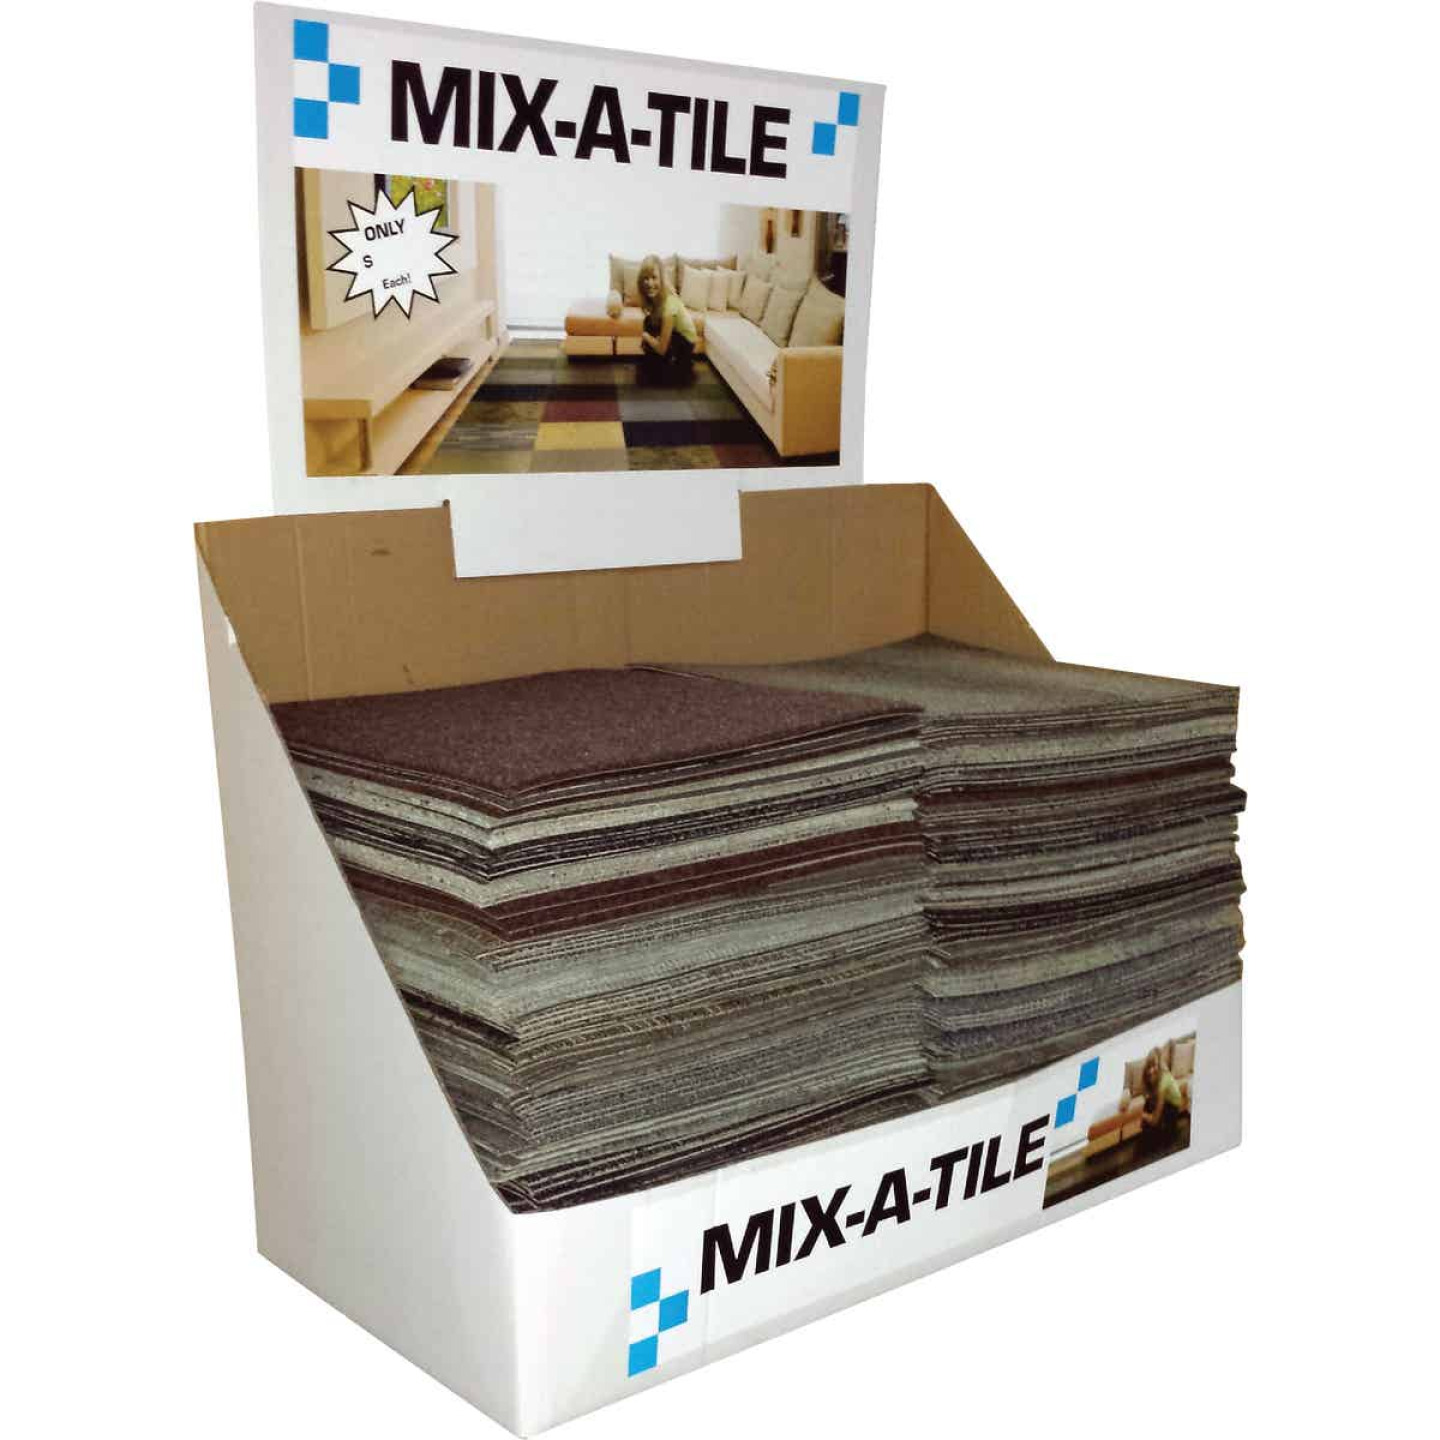 Natco Home 24 In. W x 24 In. L Mixed Colors Indoor Carpet Tile Image 1